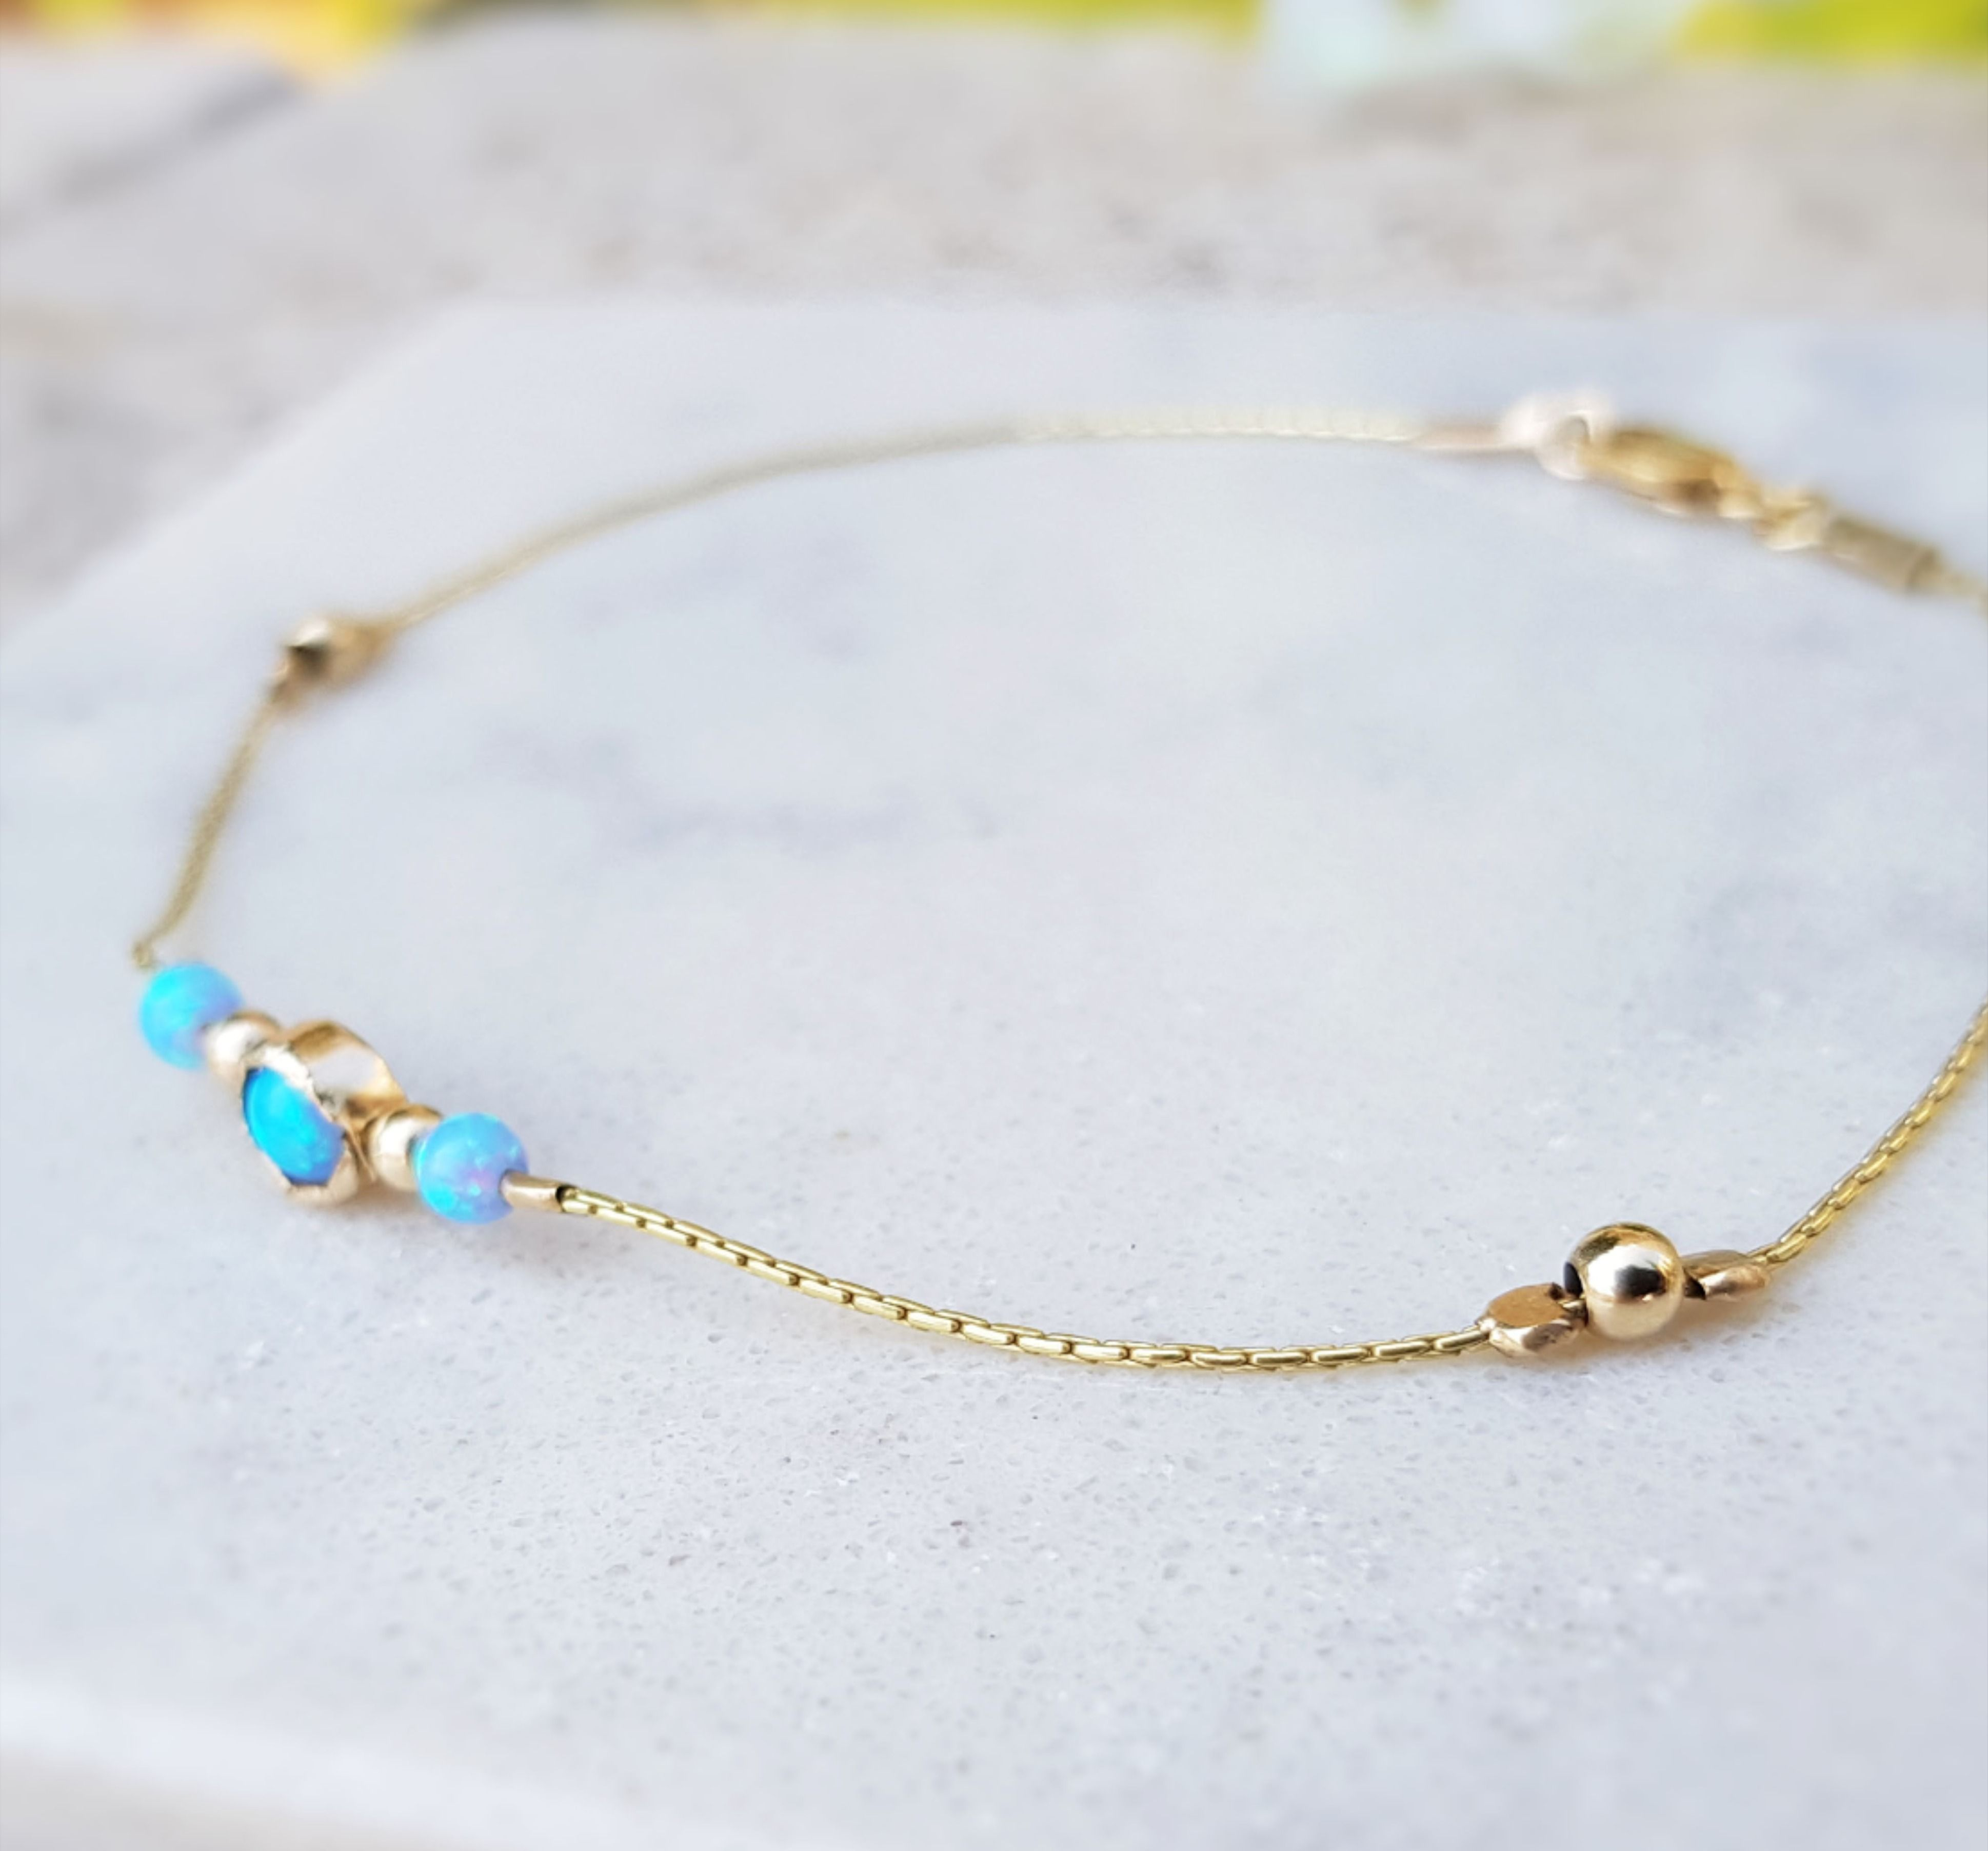 Dainty Opal Anklet,Opal Jewelry,Gold Opal Anklet,Beach Anklet